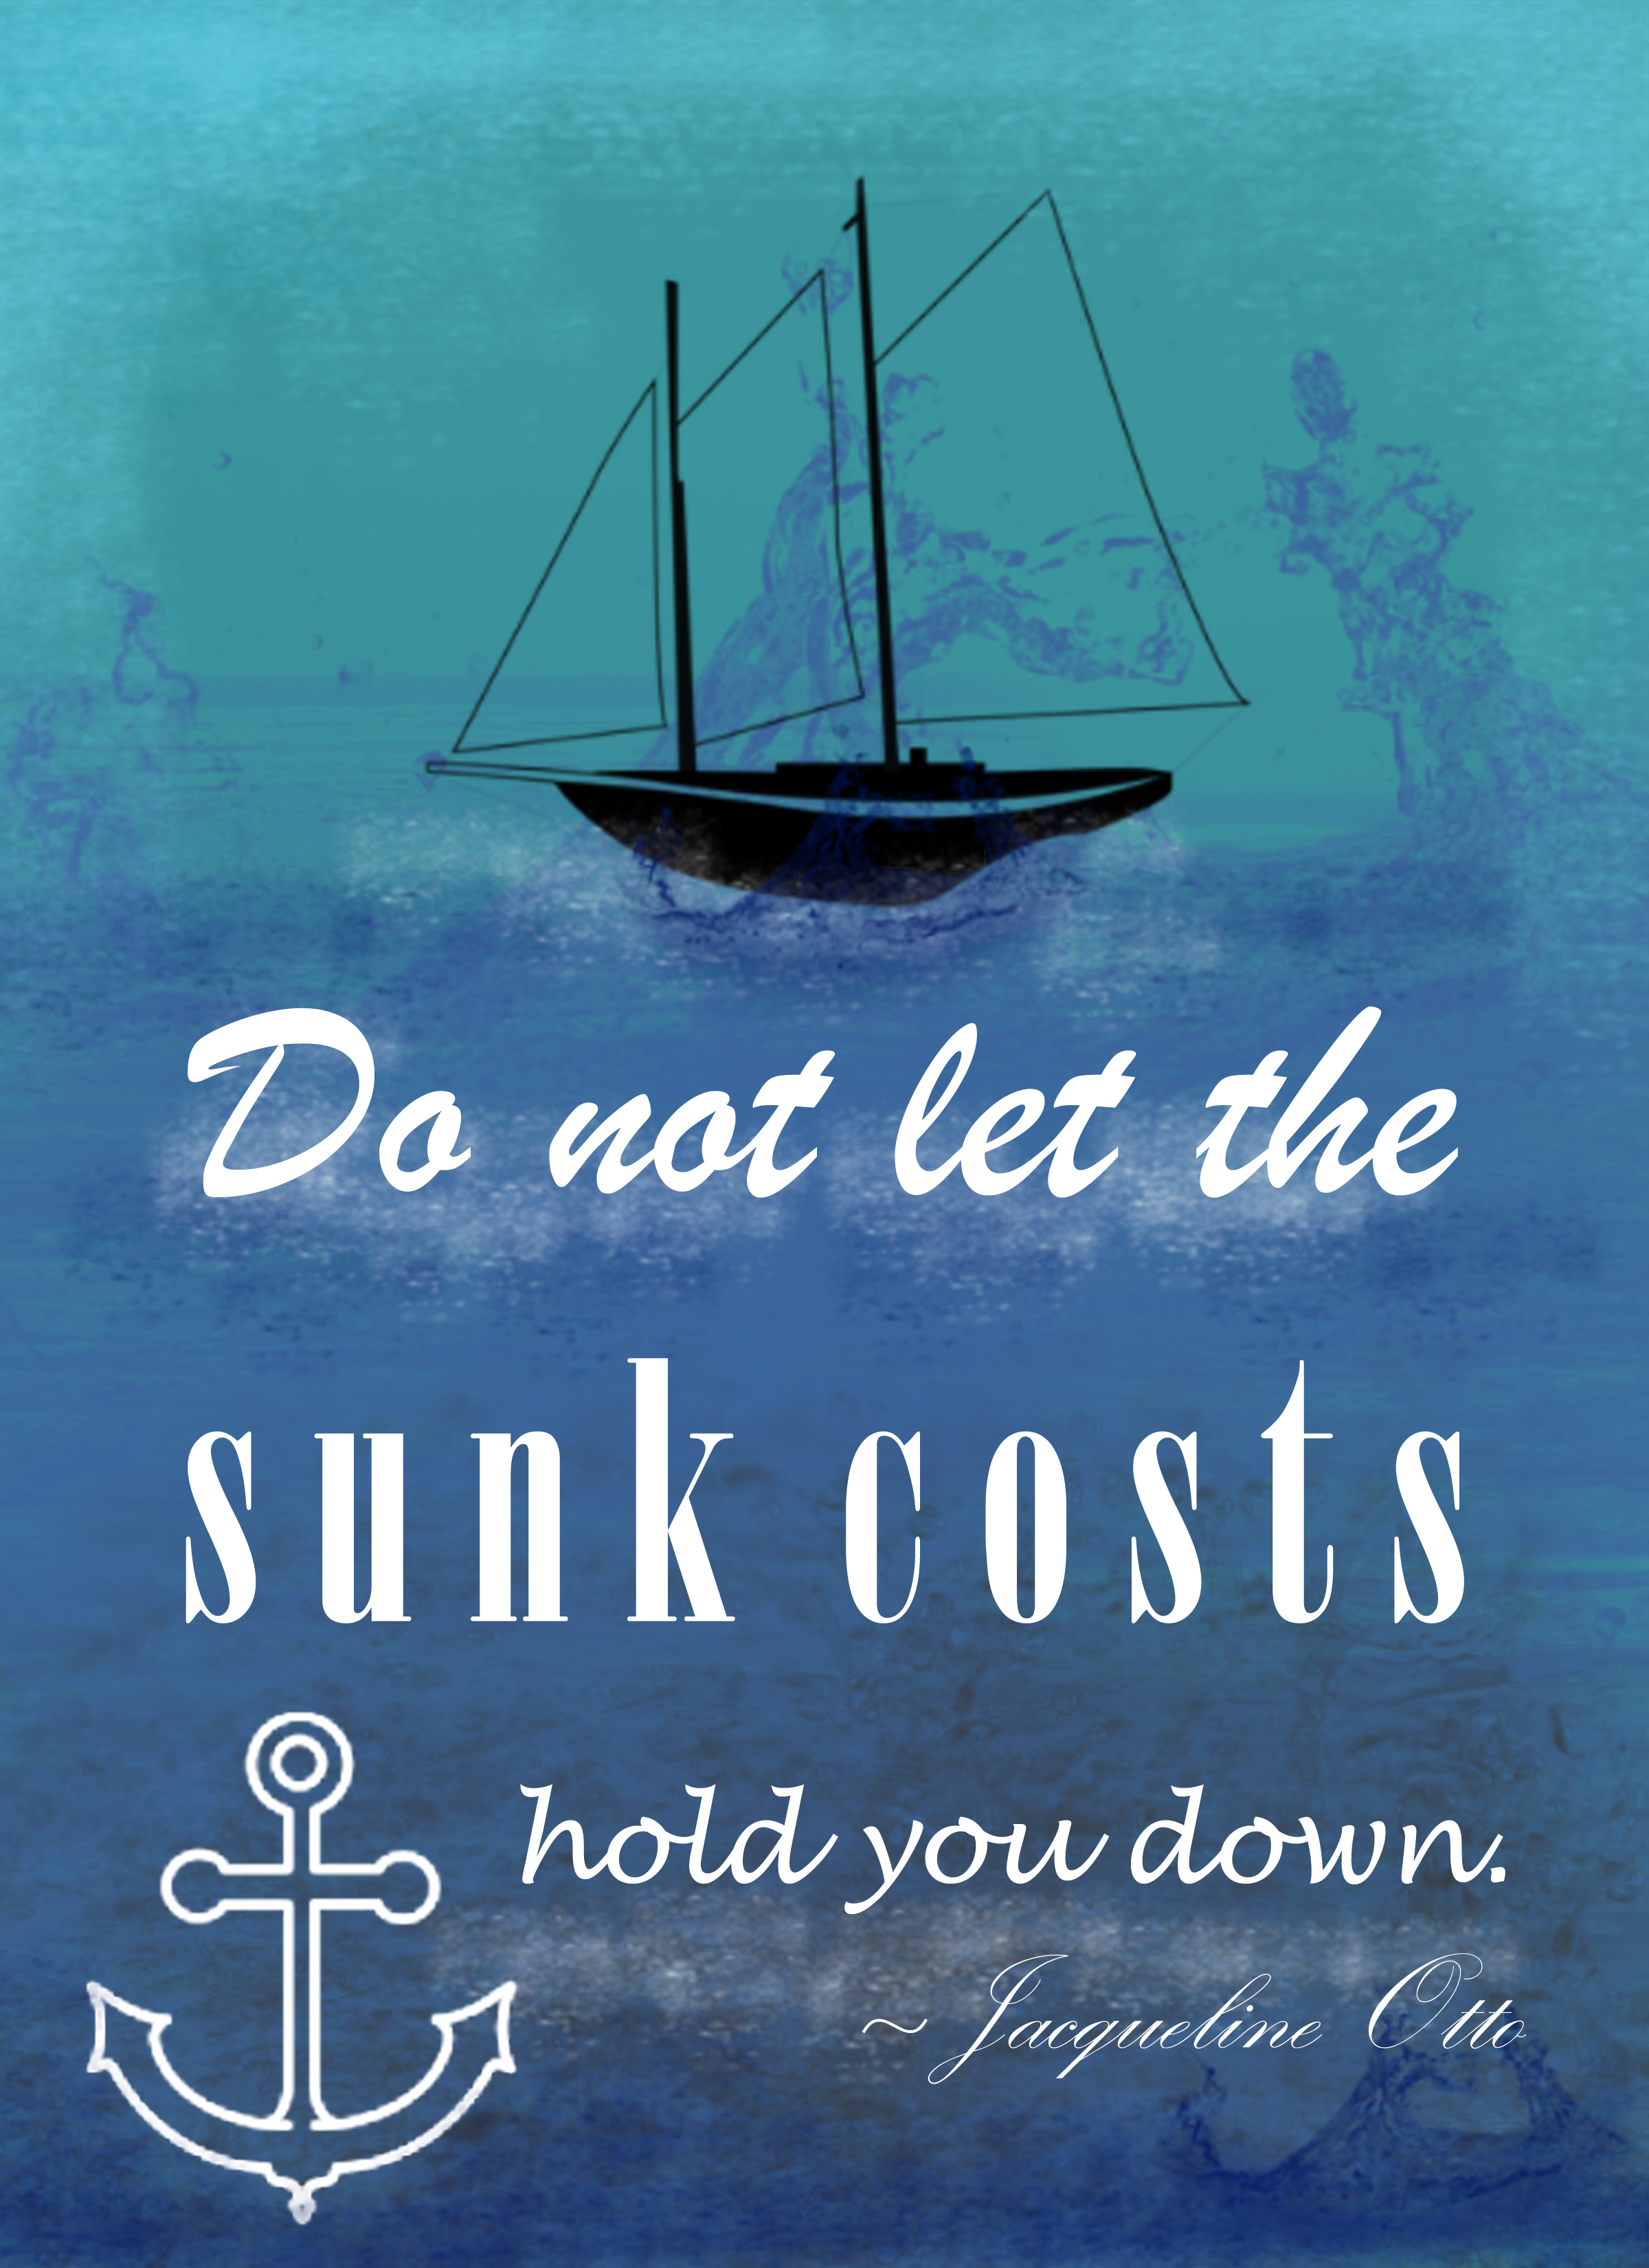 Don't Count the Sunk Costs